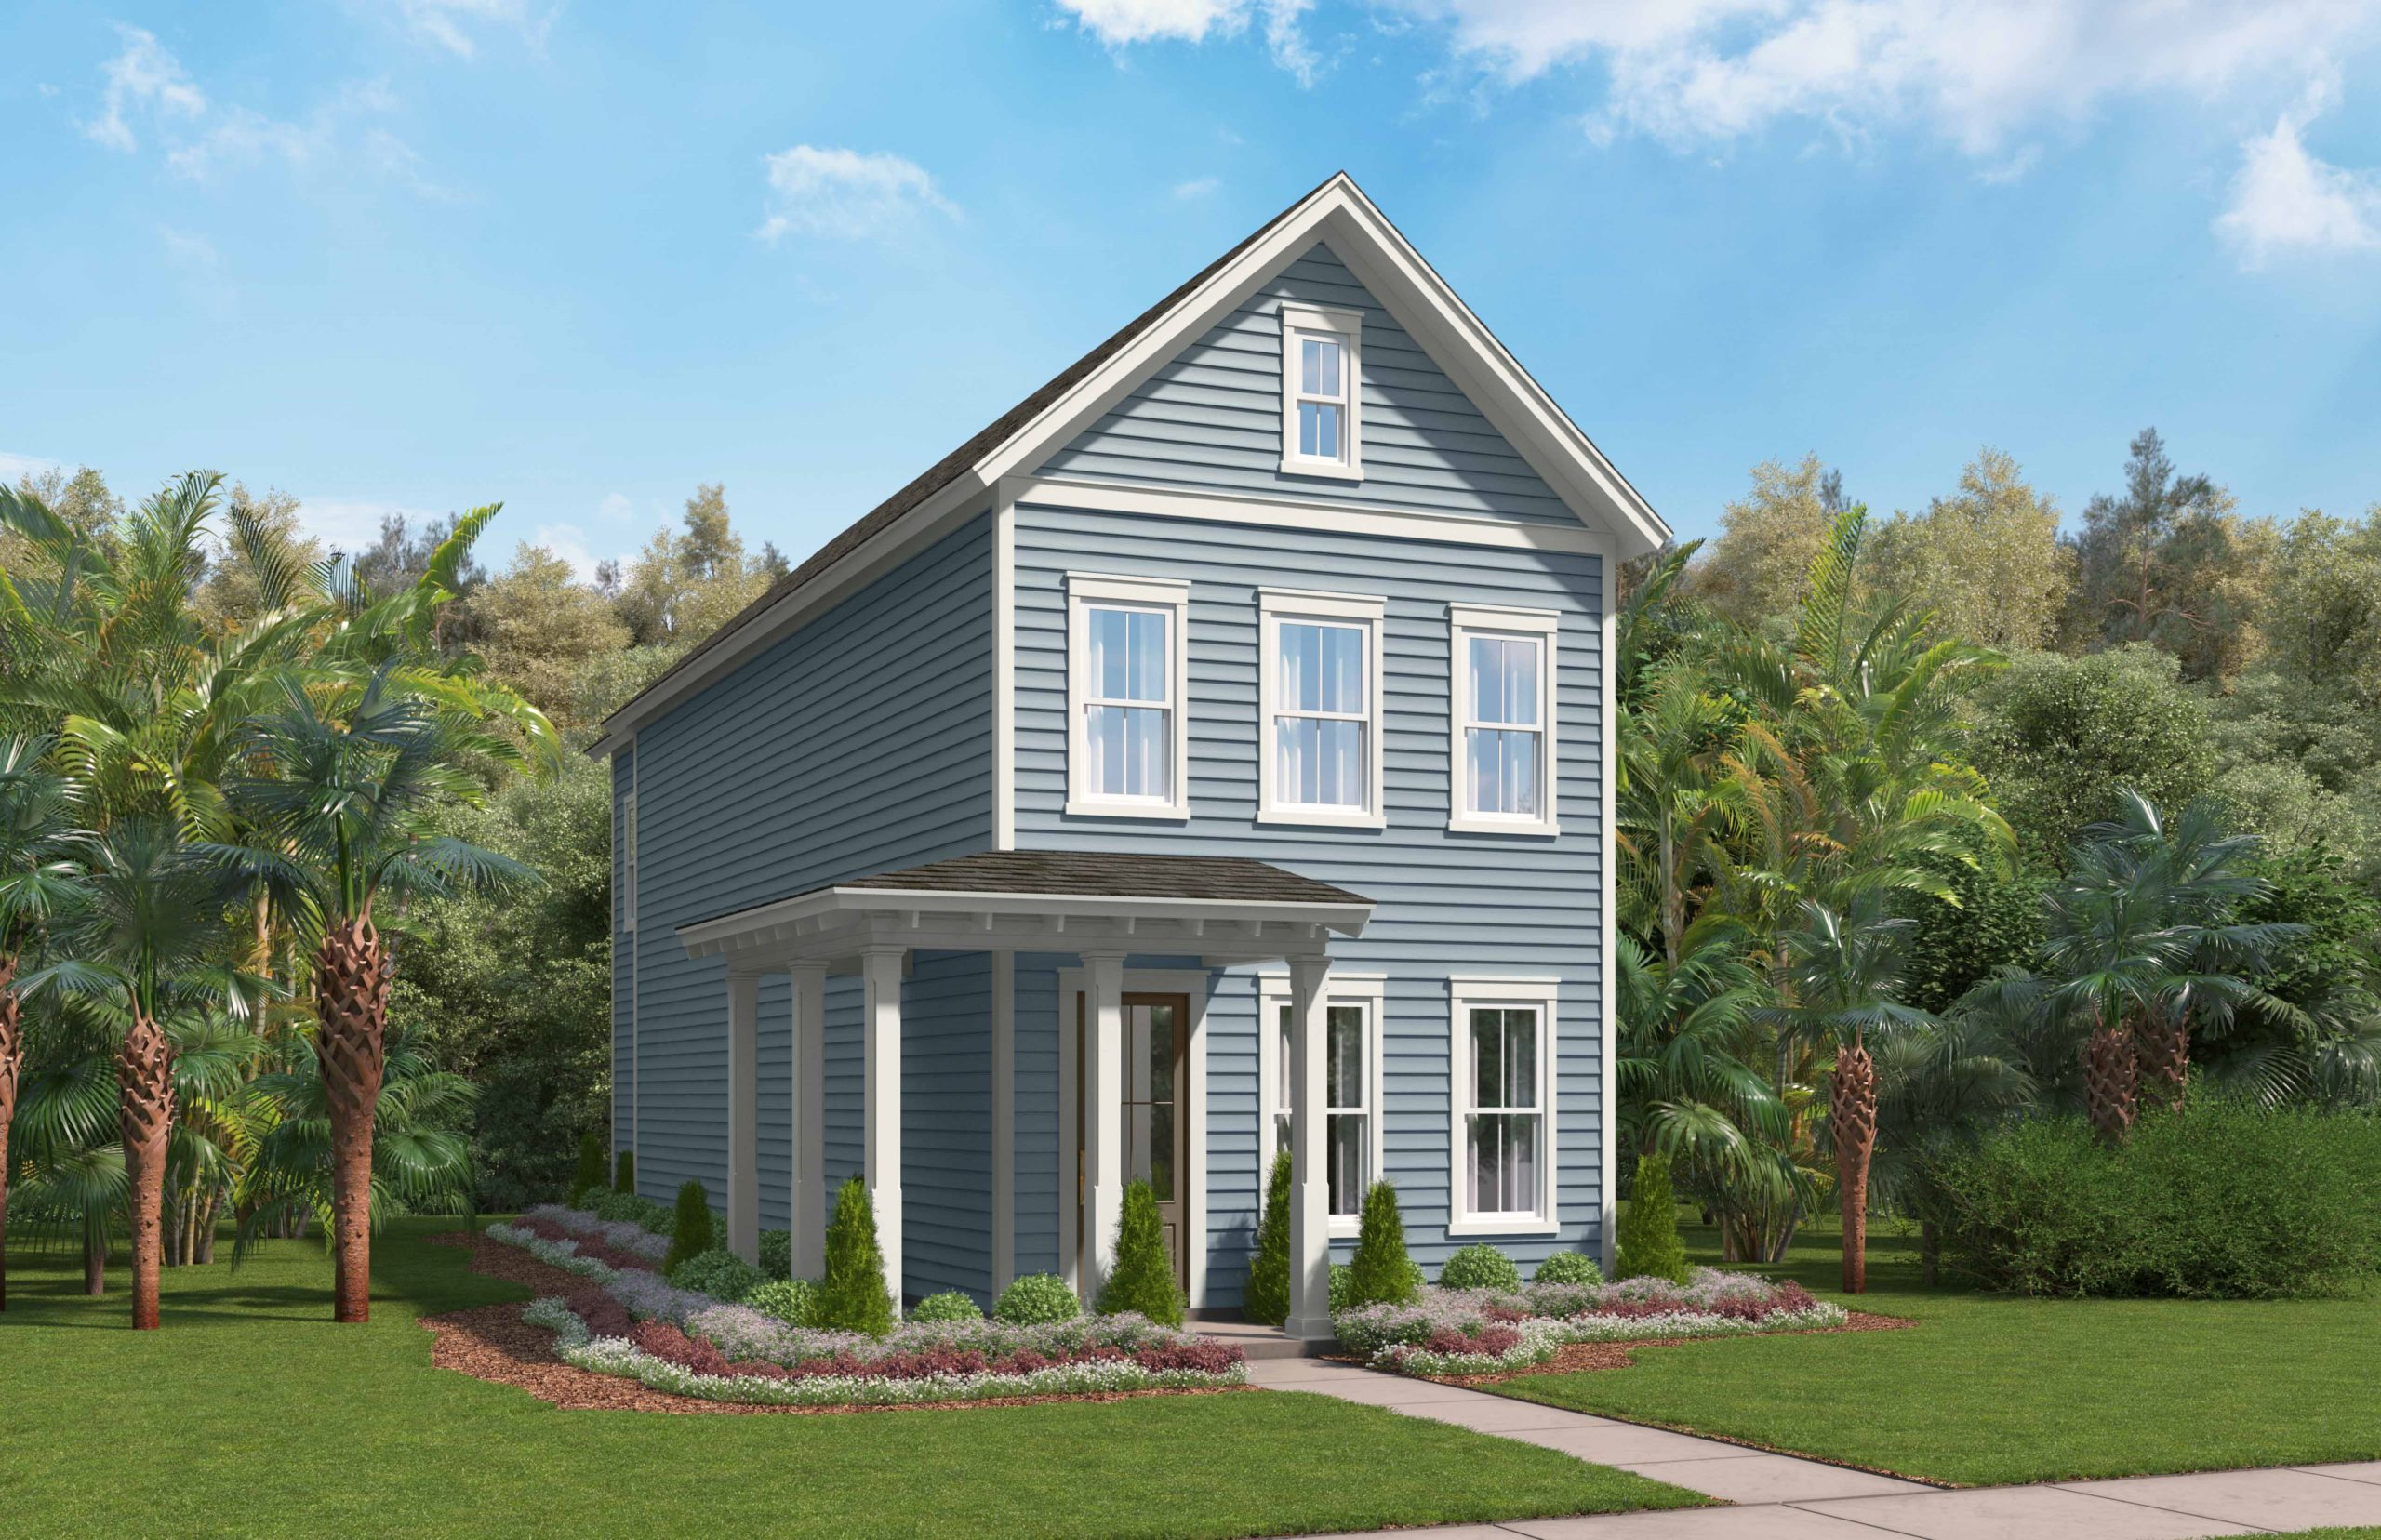 267 Summers Drive   The Jasmine by Stanley Martin Homes, New Homes in South Carolina